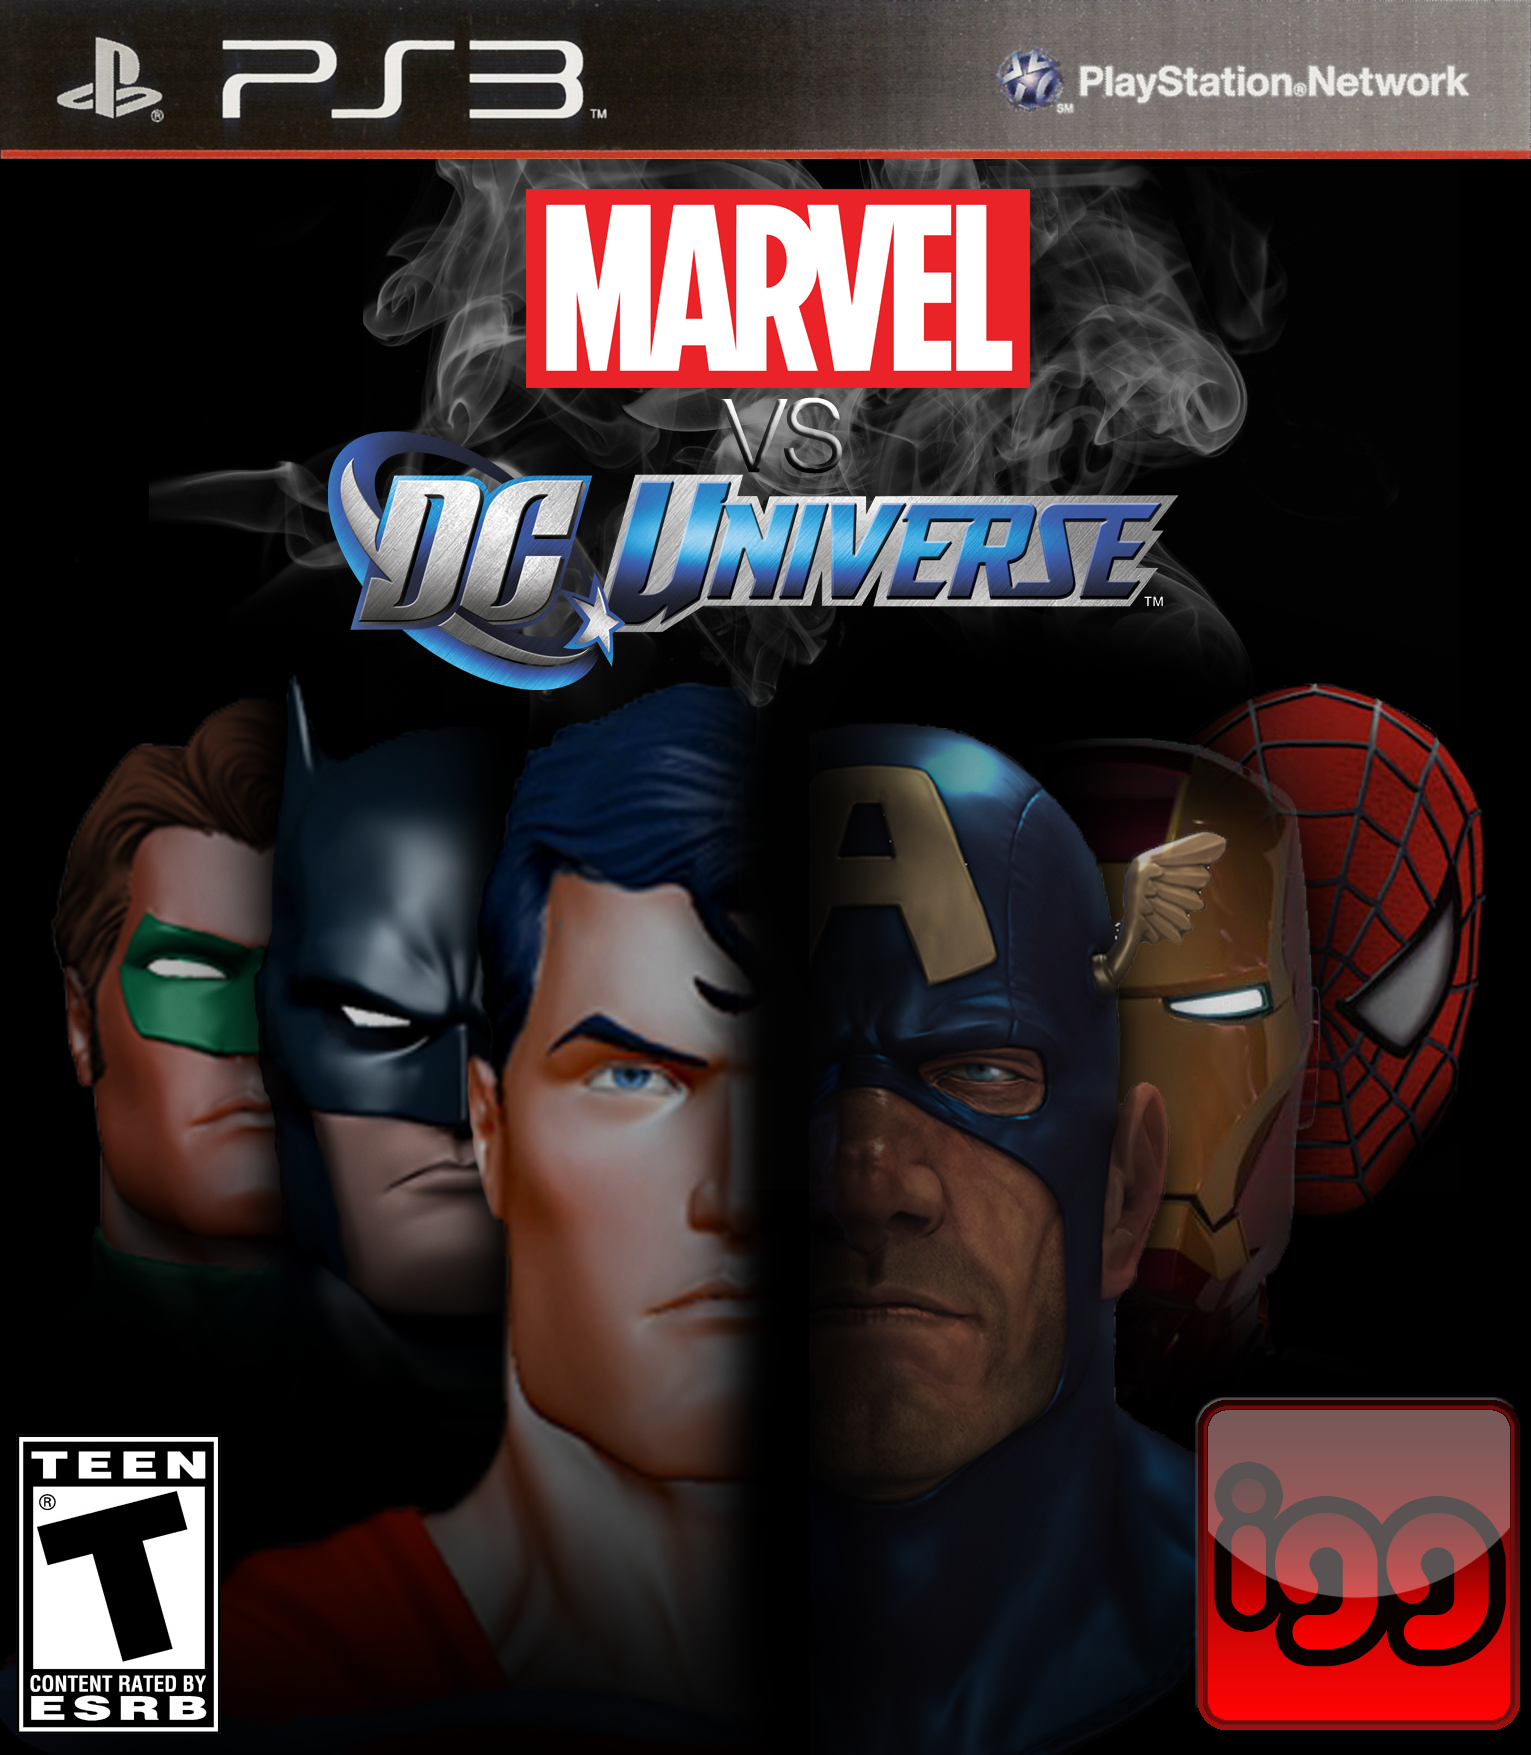 How this would work as a game marvel vs dc universe